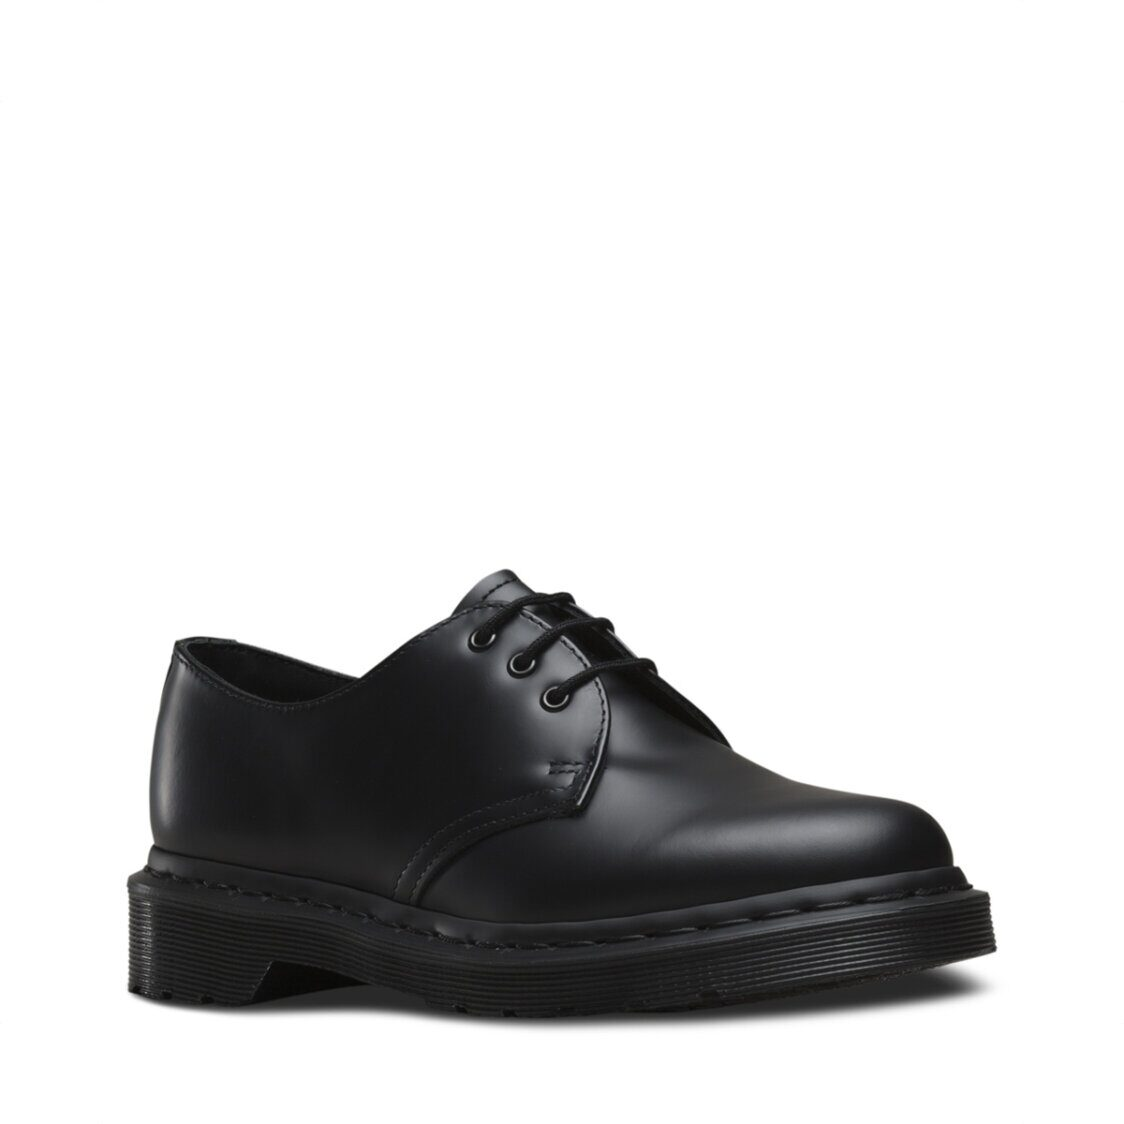 Dr Marten 1461 Mono Smooth Leather Oxford Shoes